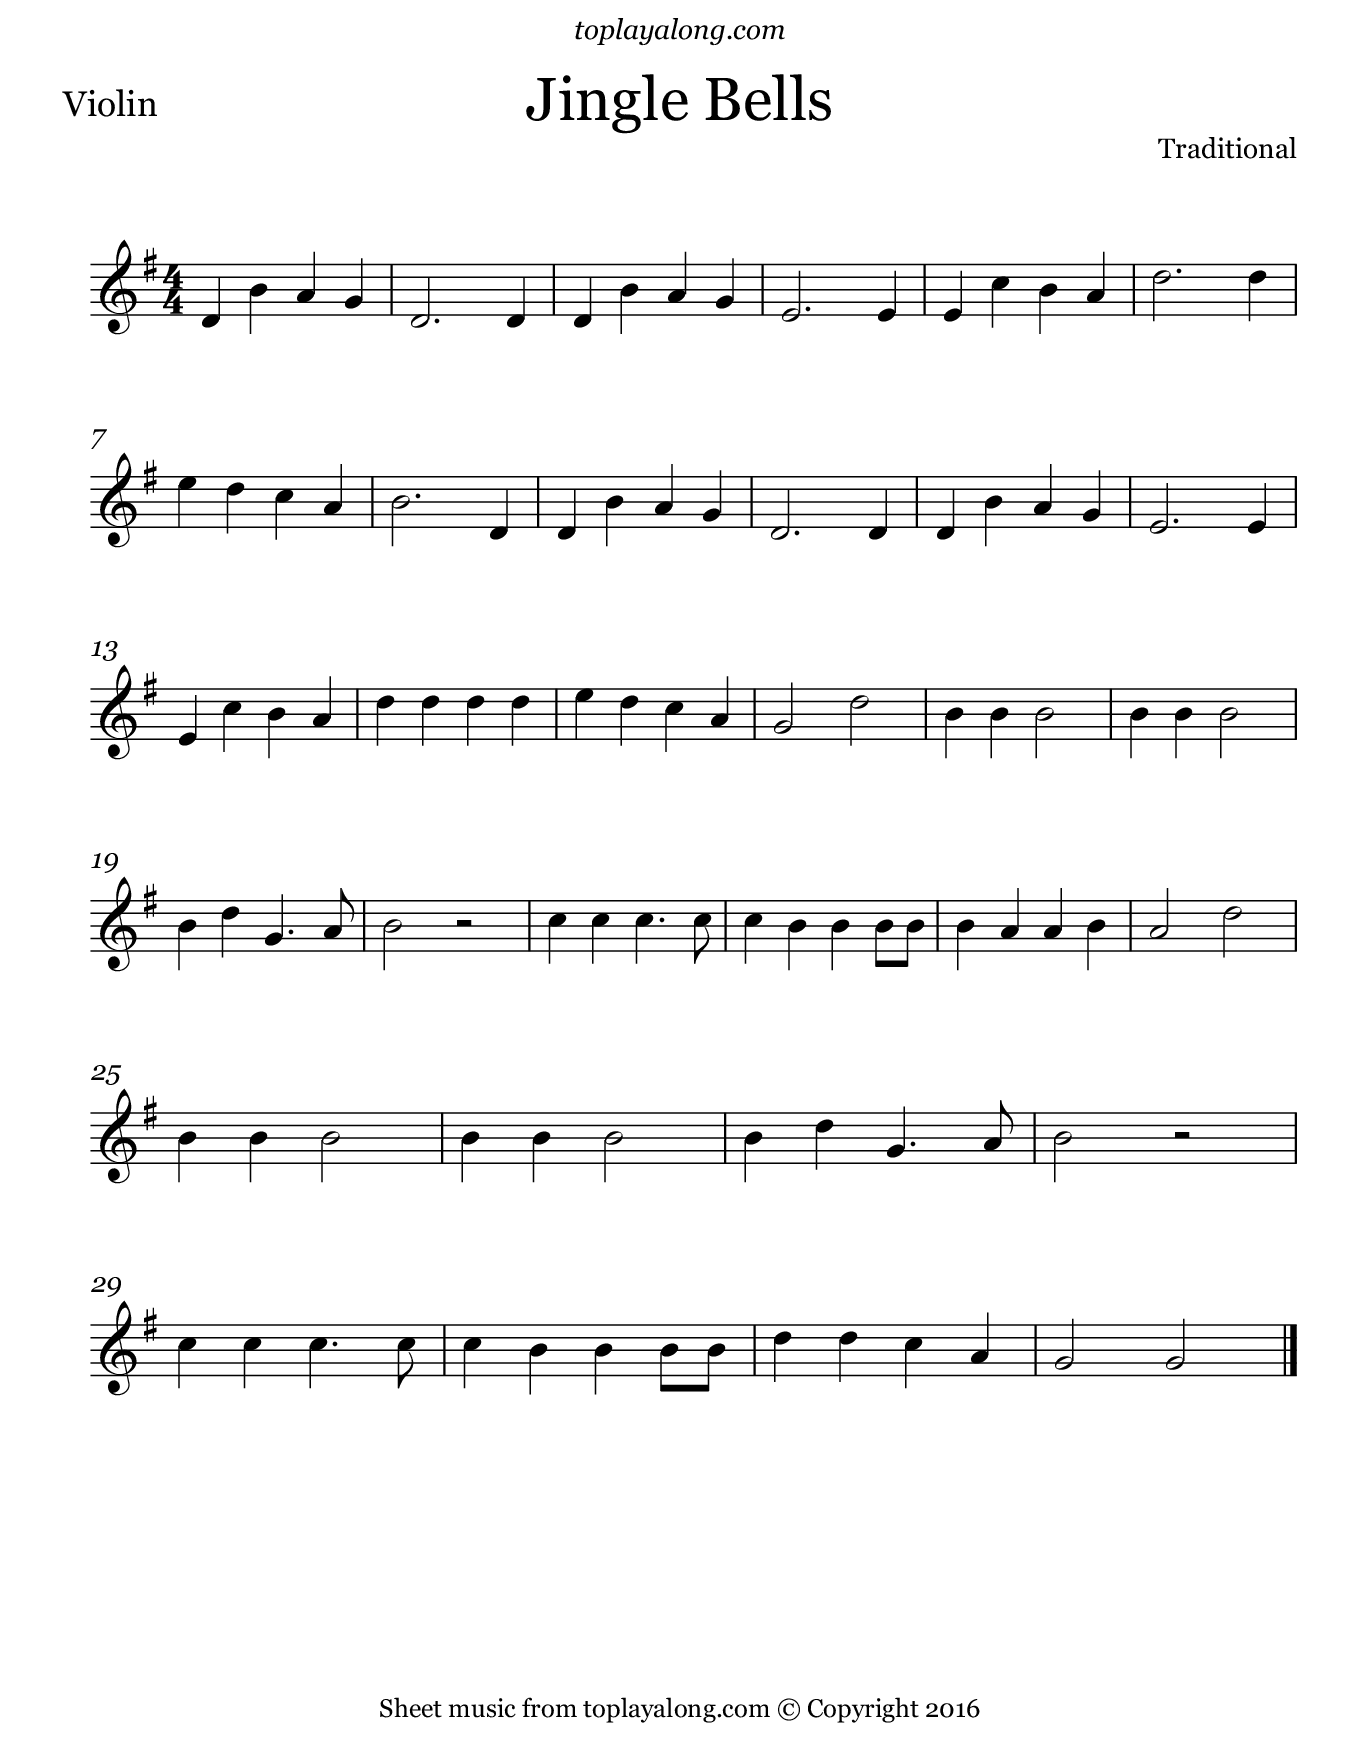 Jingle Bells. Sheet music for Violin, page 1.